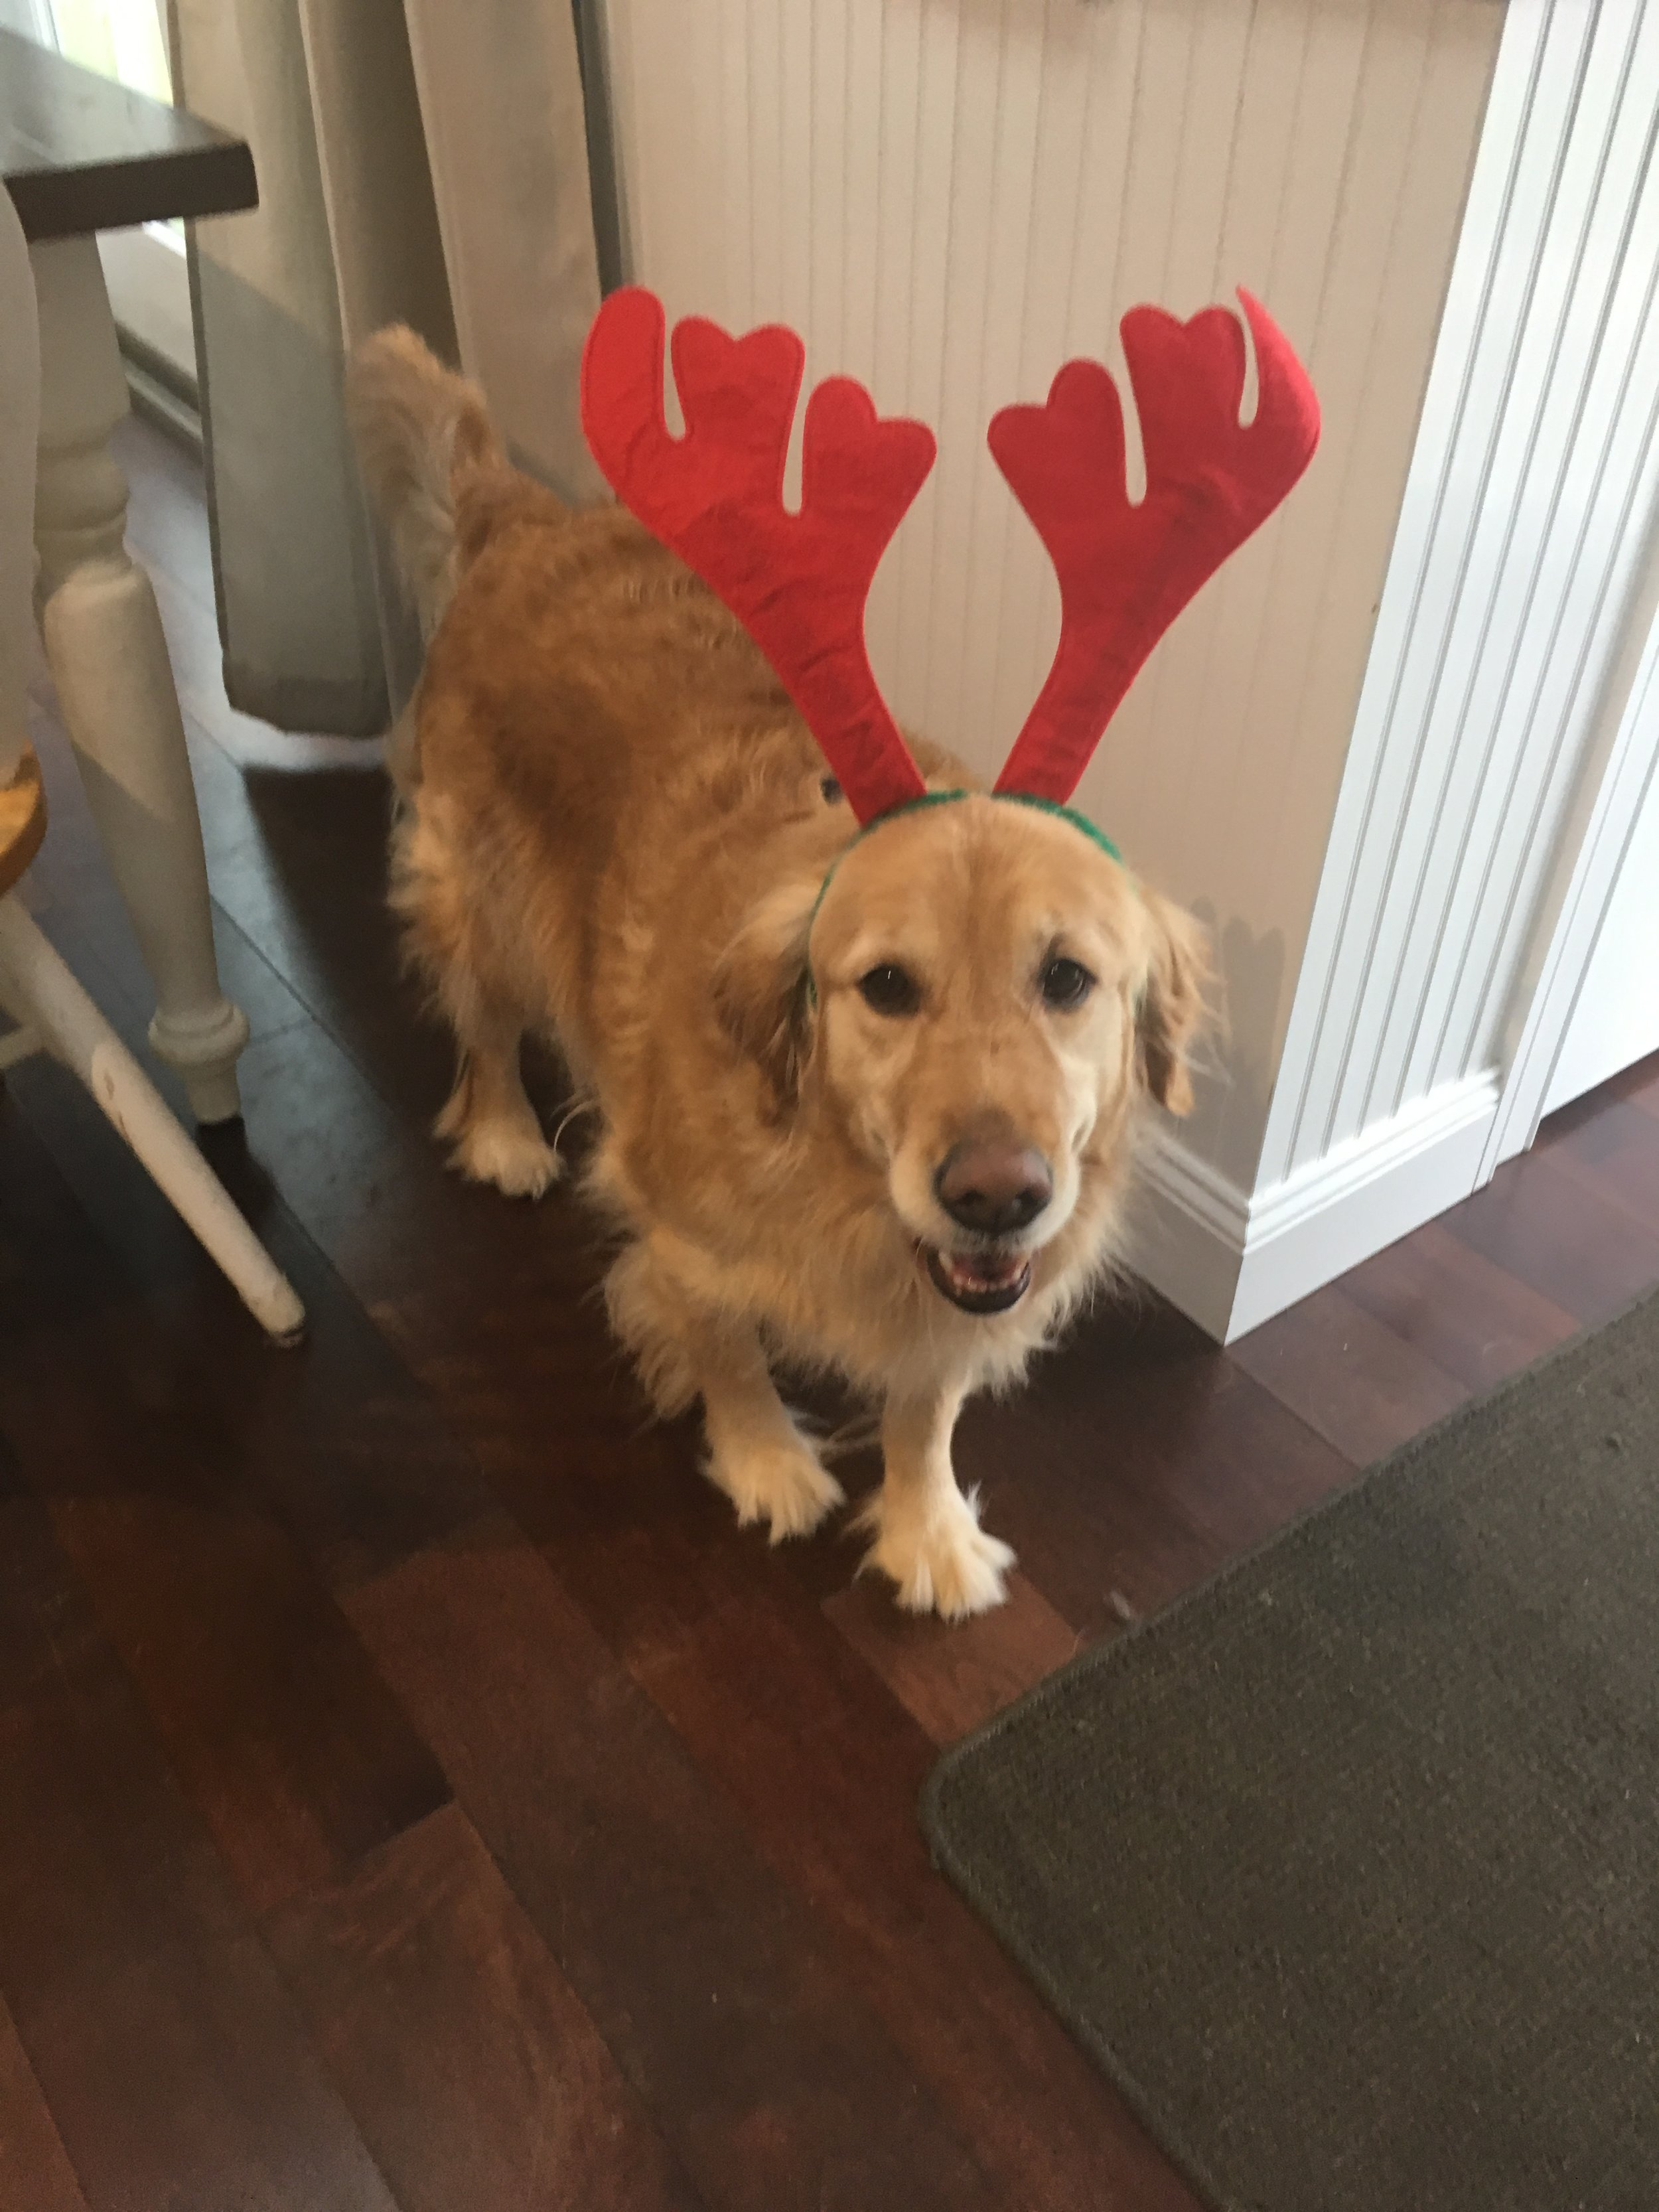 Molly the reindeer